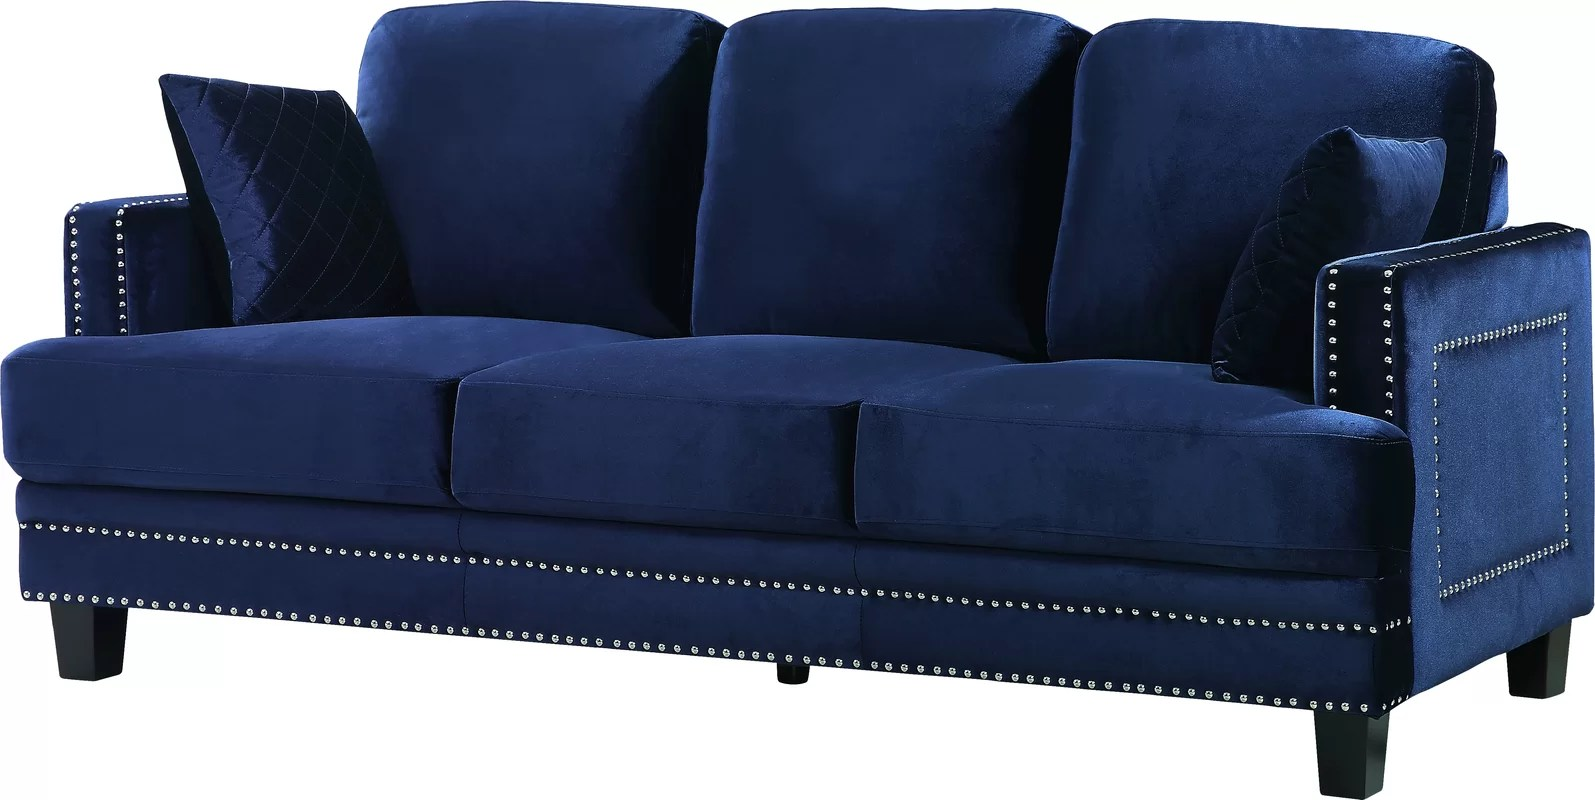 Nailhead Sofa Diana Nailhead Sofa The Dump Luxe Furniture